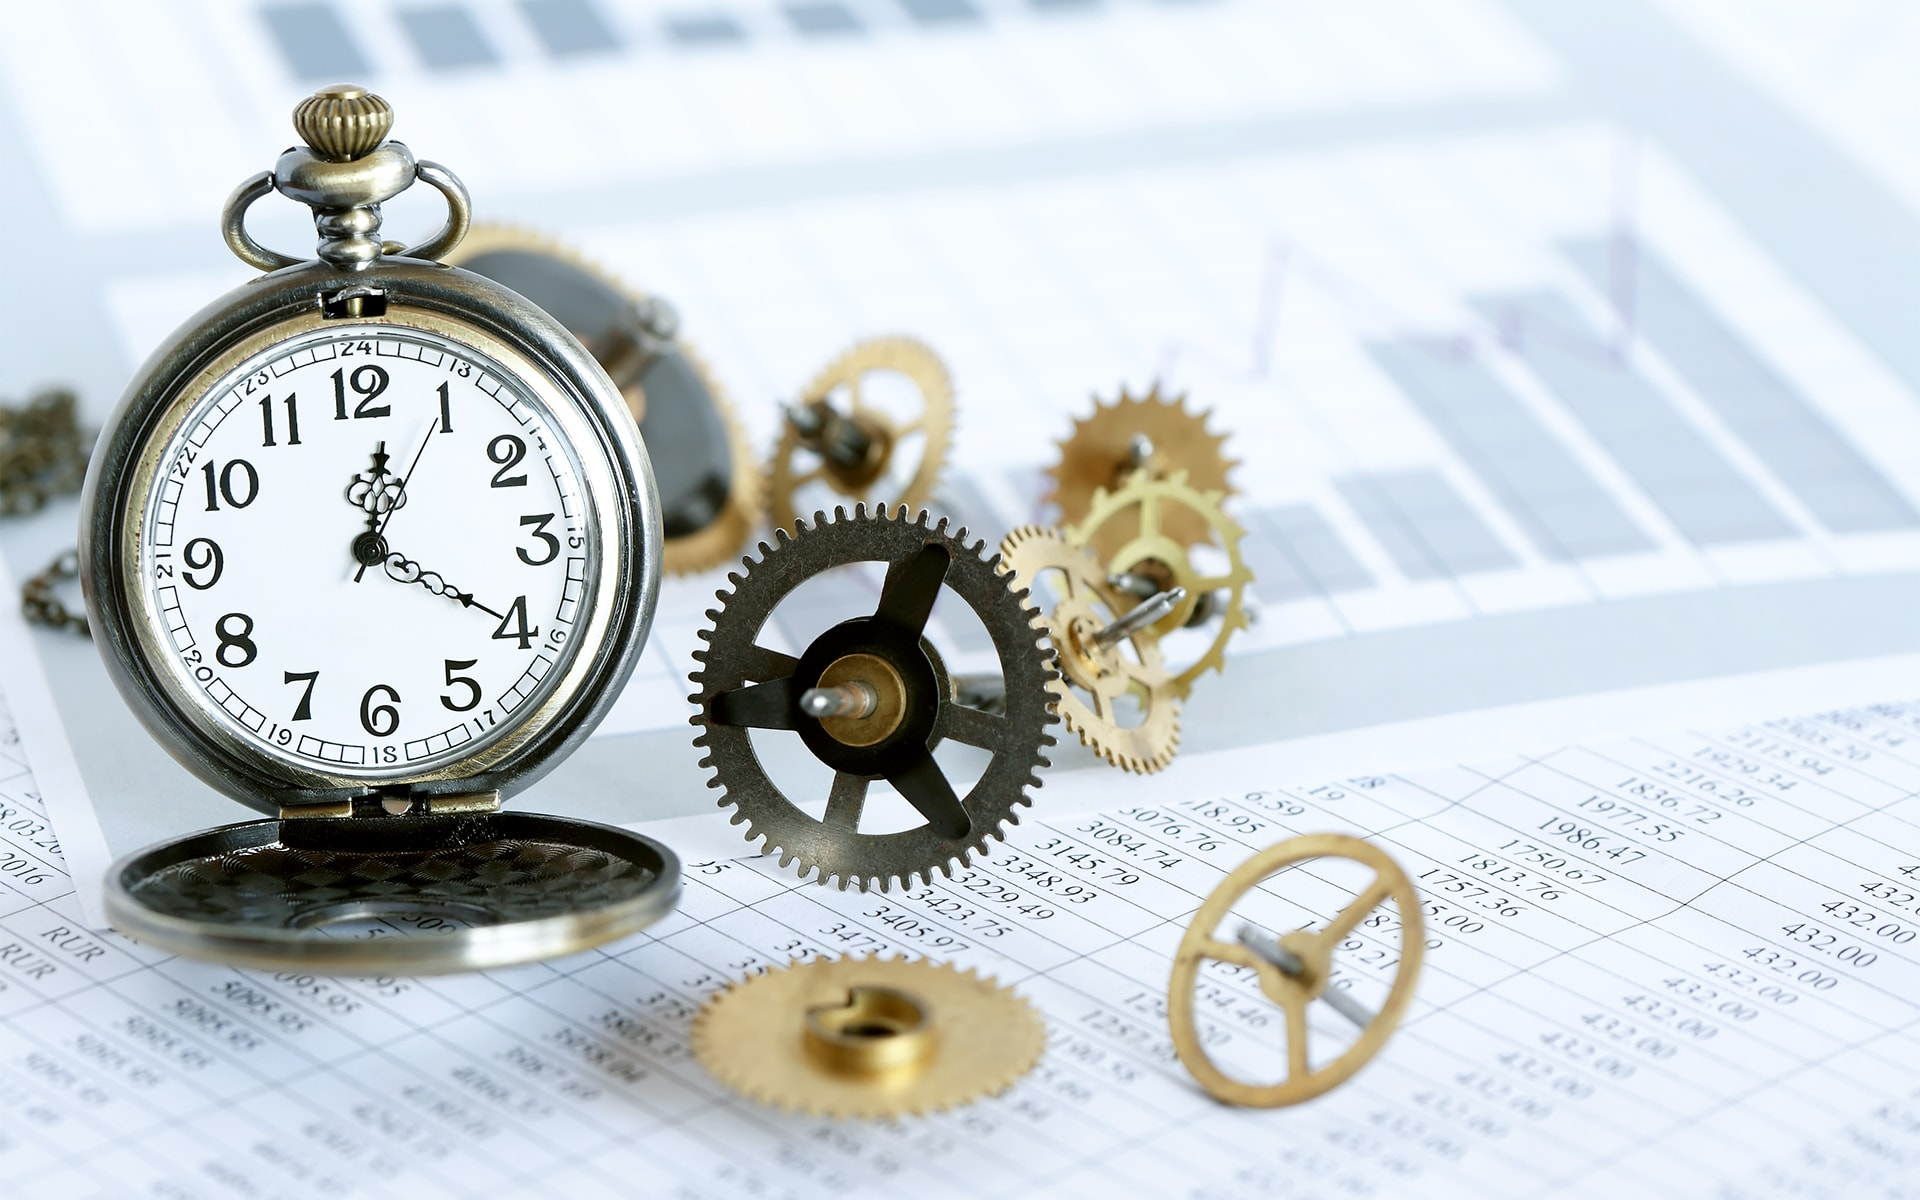 Time for Workflow Management - Watch on a spreadsheet